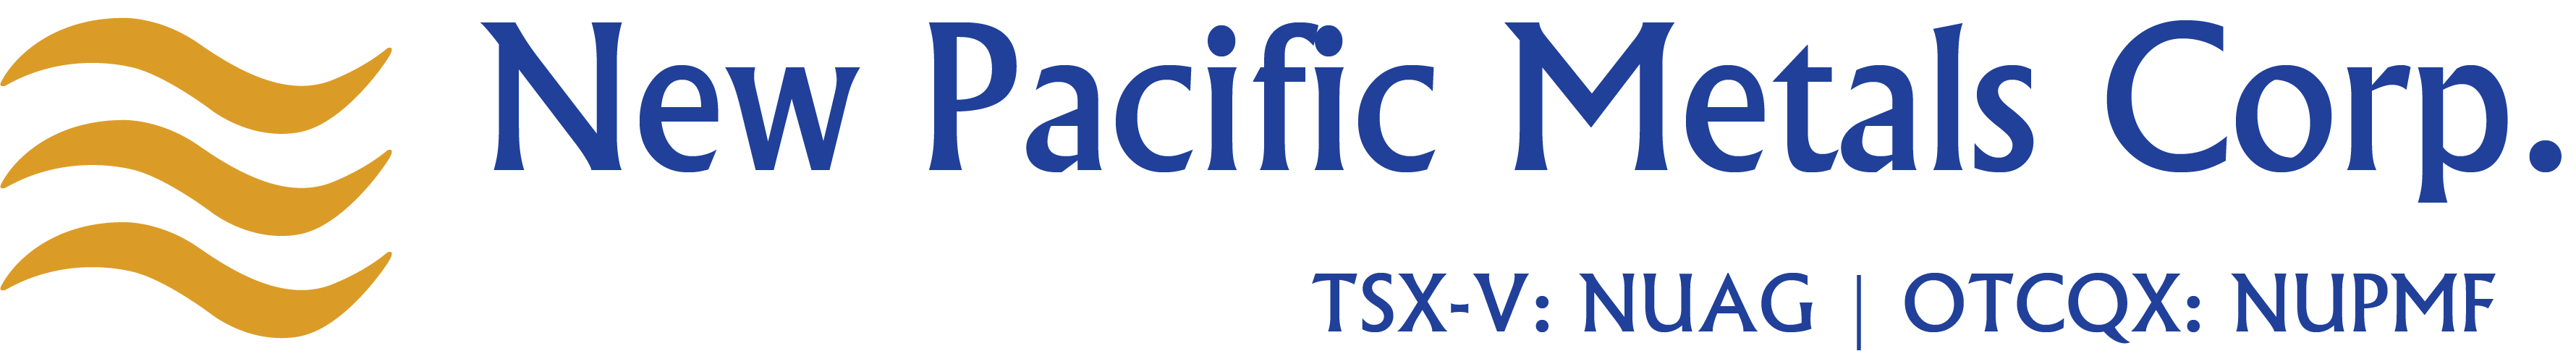 New Pacific Announces Filing of Amended and Restated Technical Report for Silver Sand Project